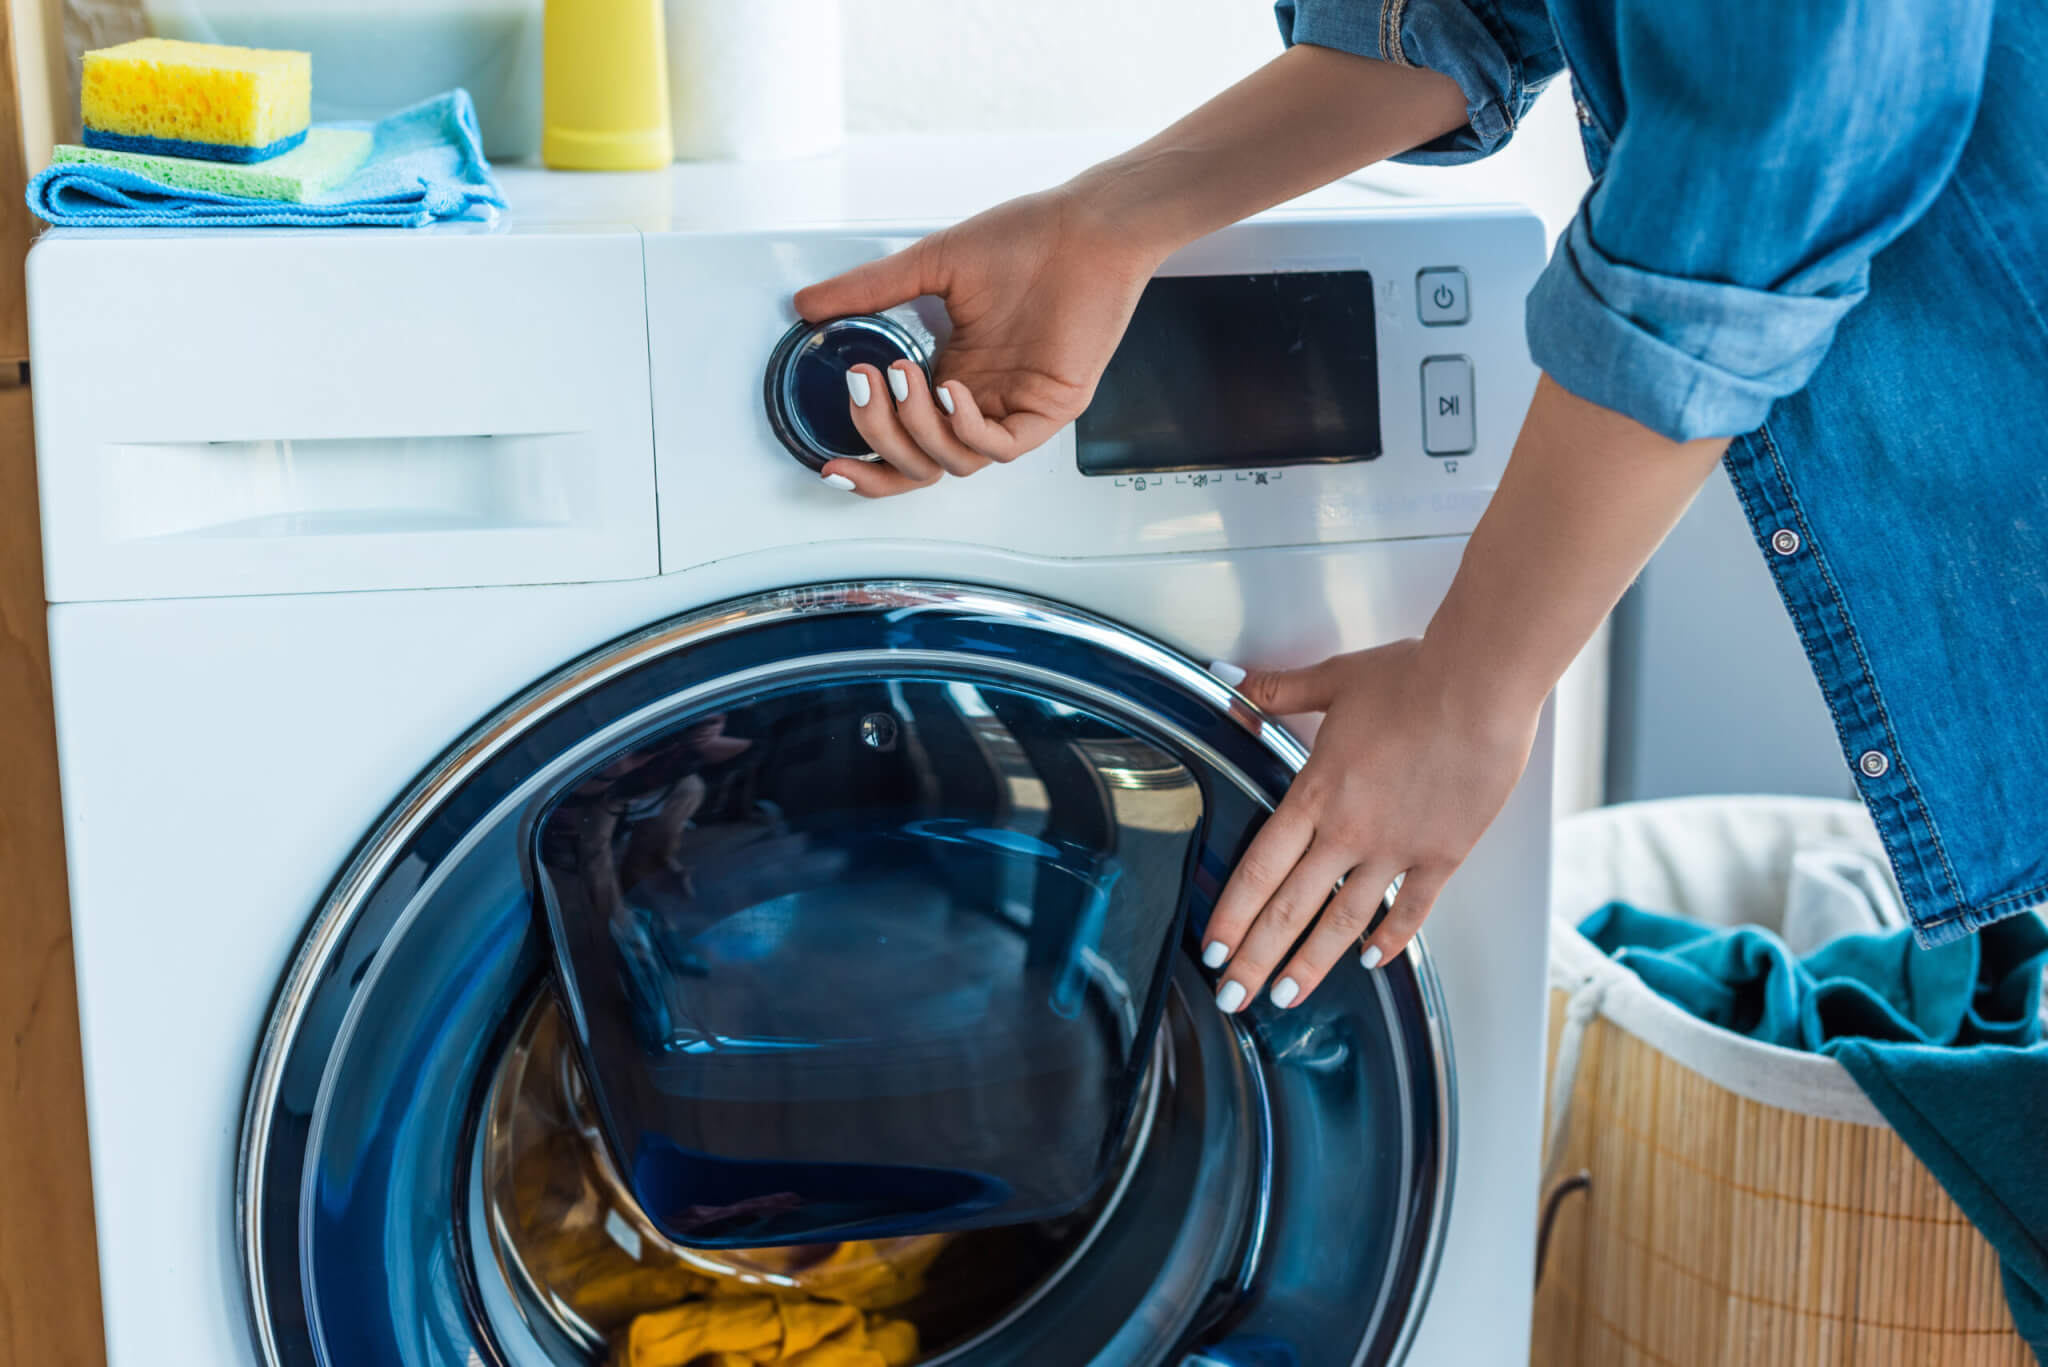 washing machine home warranty coverage in idaho